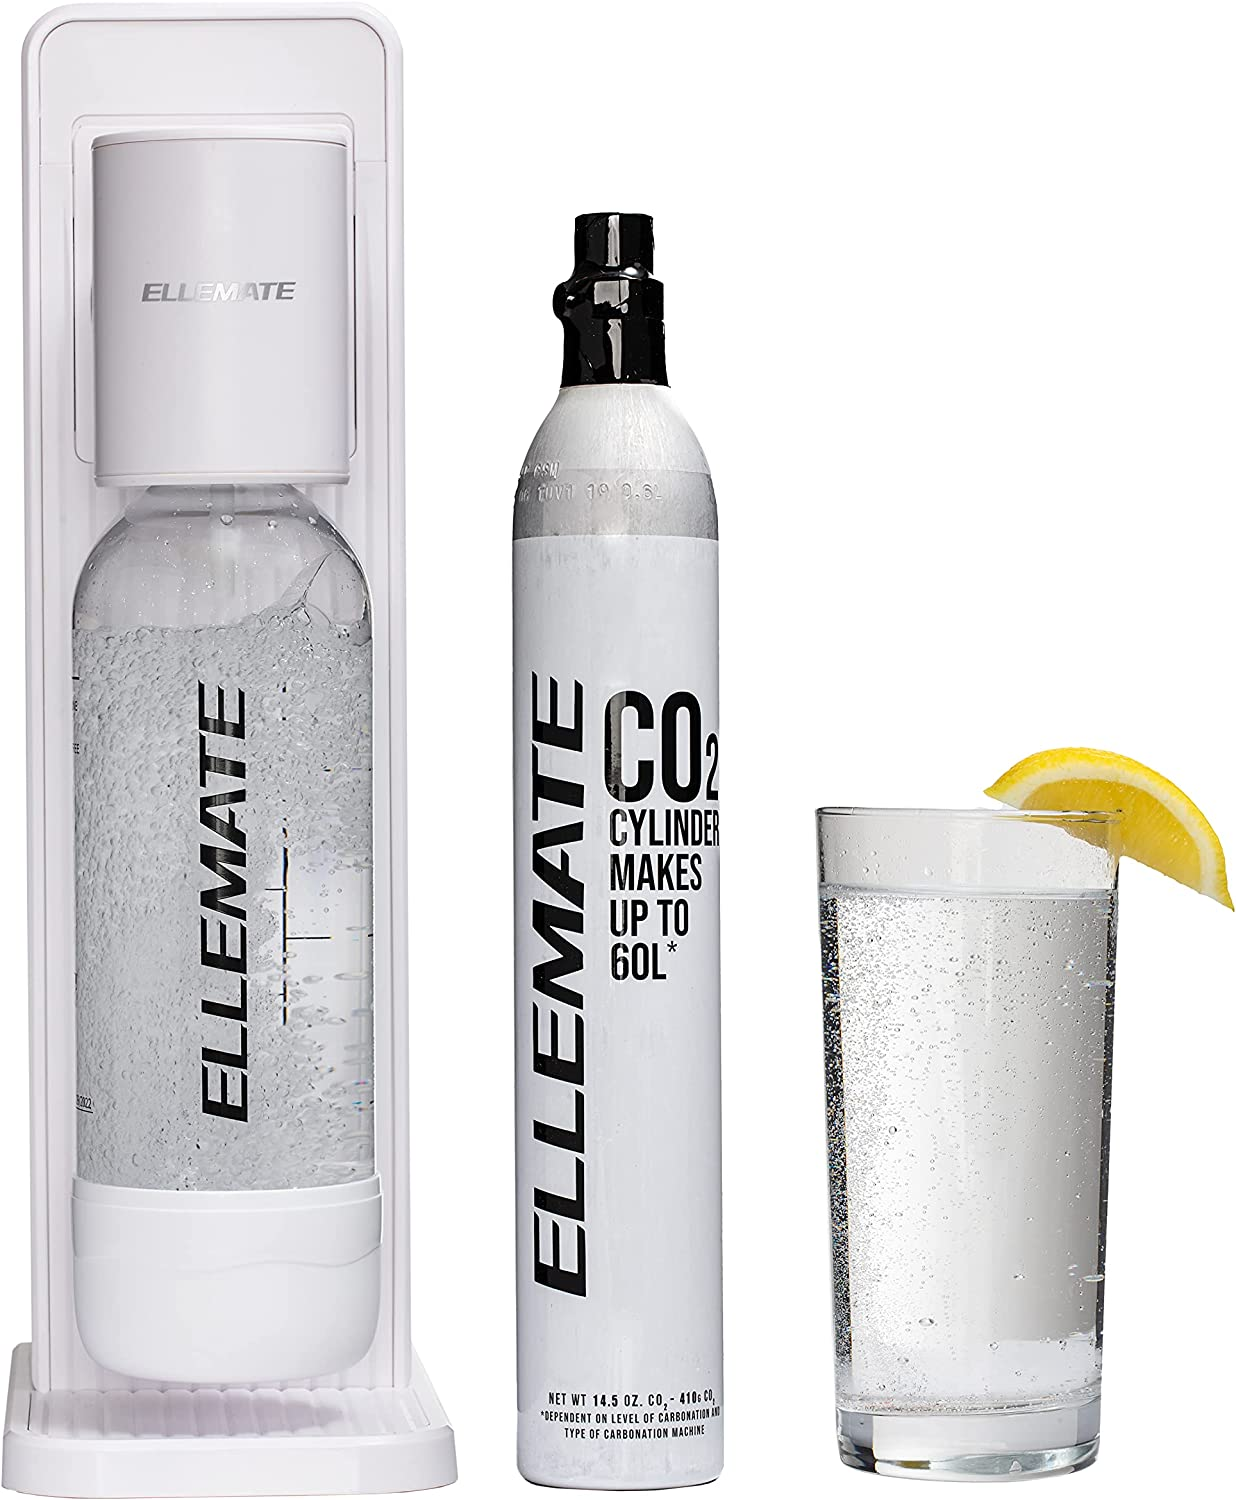 Ellemate Classic White At Cheap sale the price of surprise - Soda Maker Fizz Cordless Adjustable